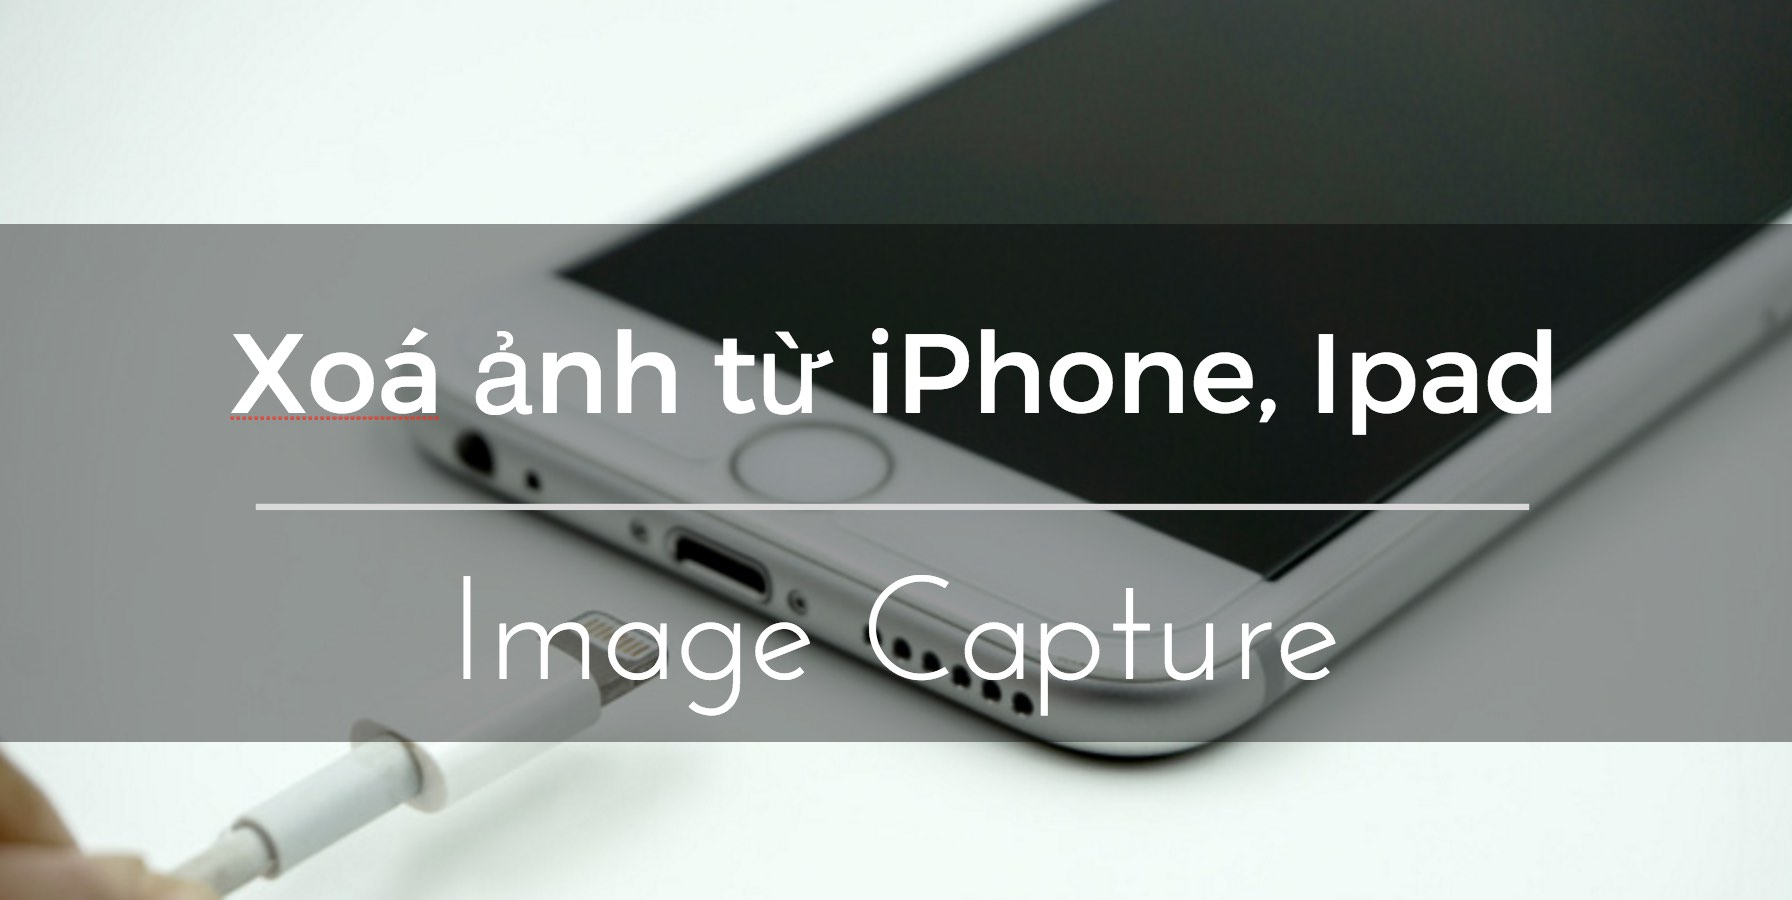 xoa anh voi image capture